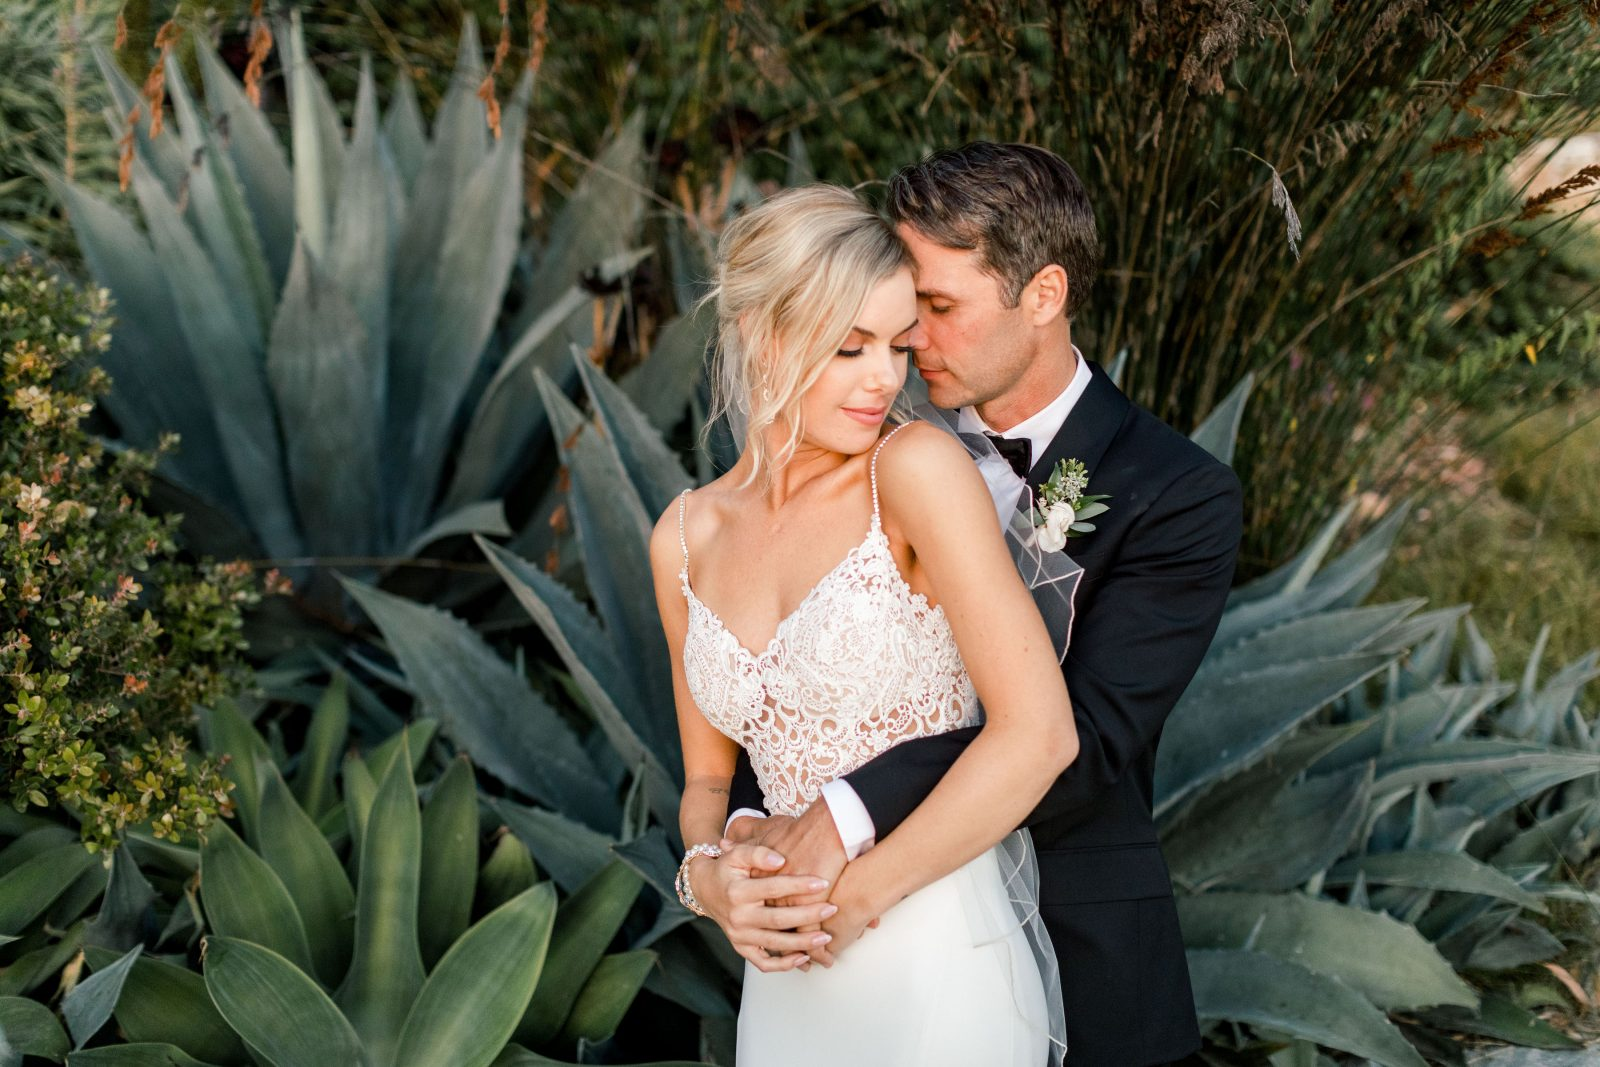 18-10-Brittany-Anthony-Big-Sur-Elopement-Wedding-Photographer-Zeeqk-Barkis-419 (1)